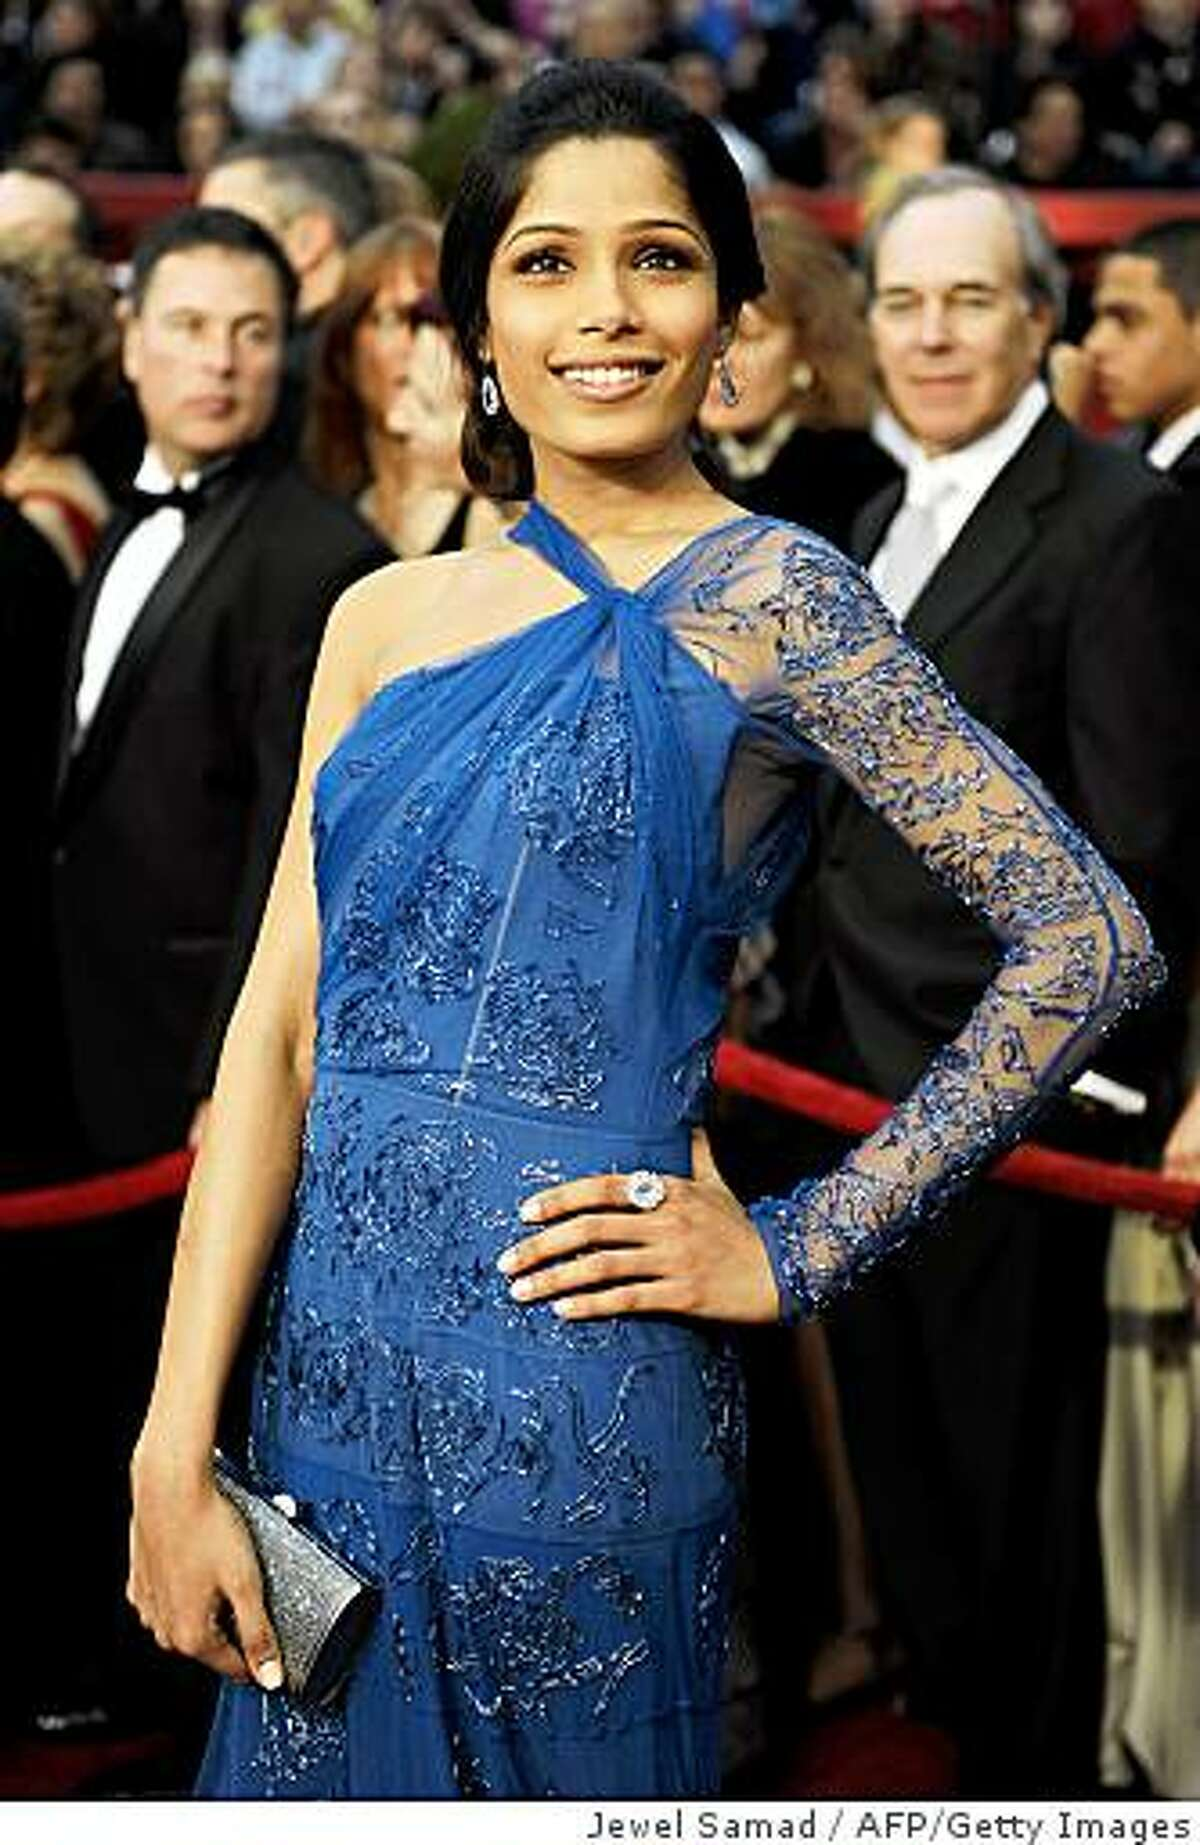 Actress Freida Pinto arrives at the 81st Academy Awards at the Kodak Theater in Hollywood, California on February 22, 2009.